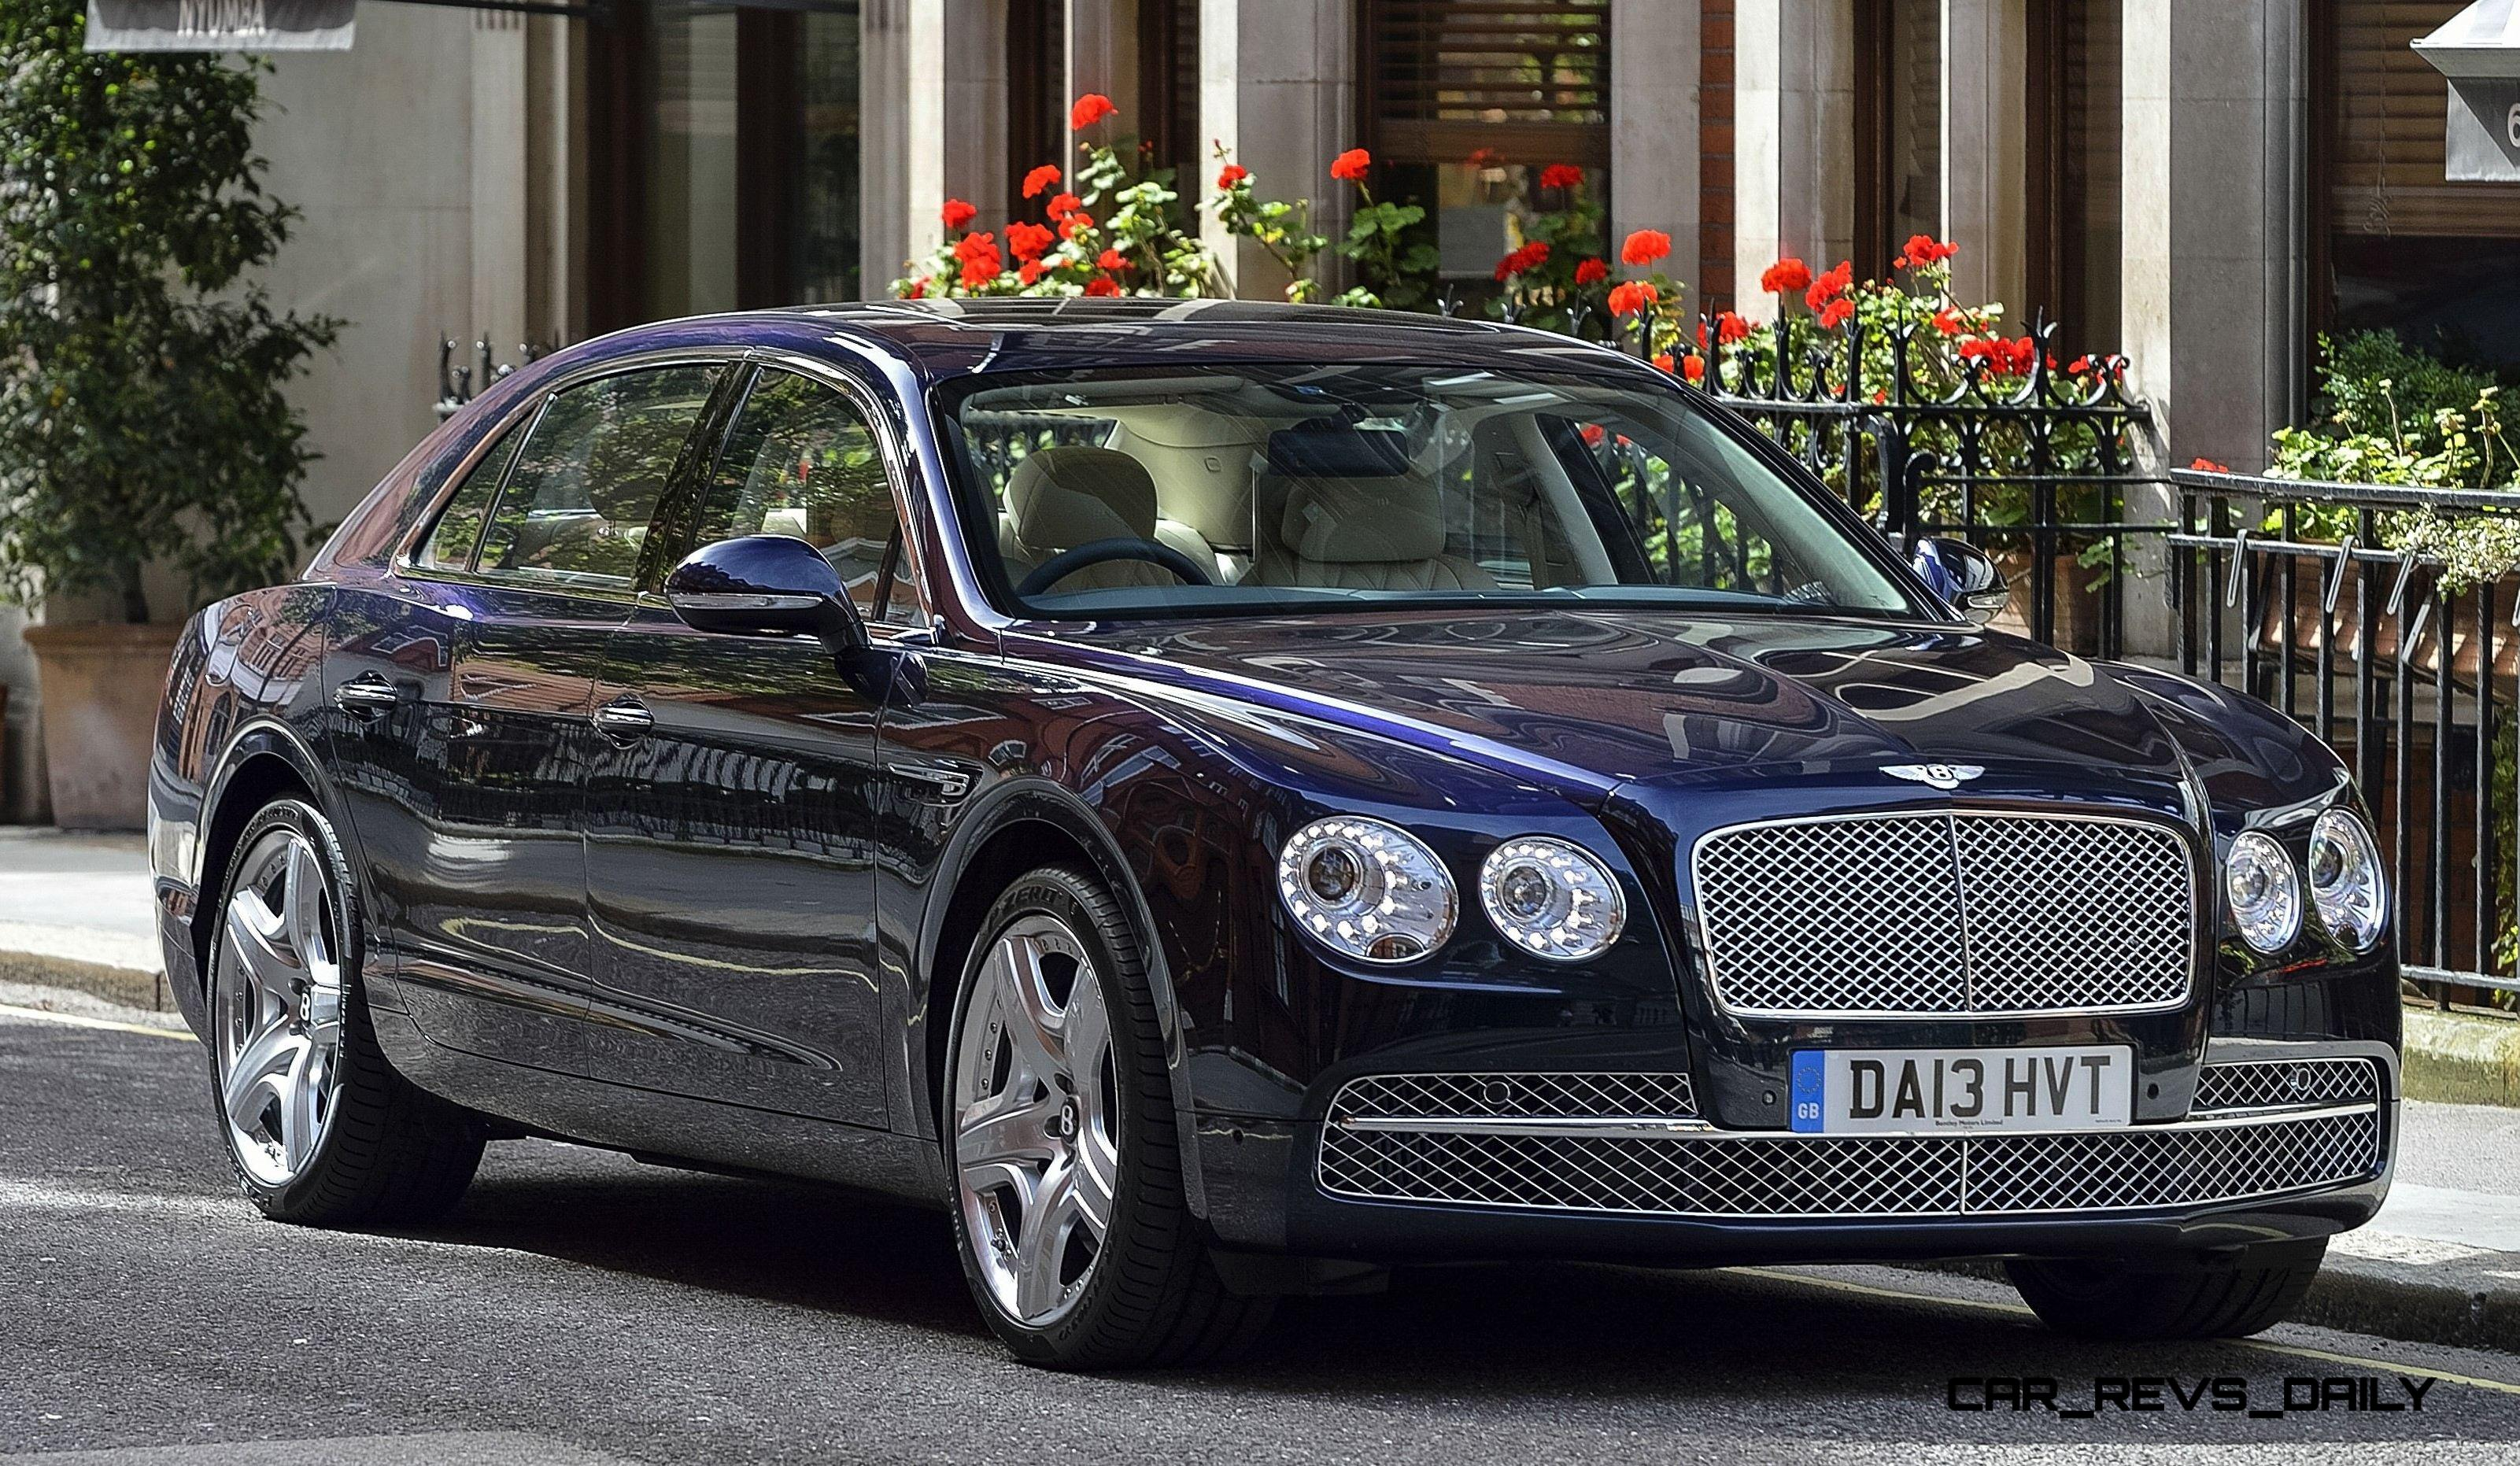 s pictures photos gt bentley here prices continental of click inspirational and